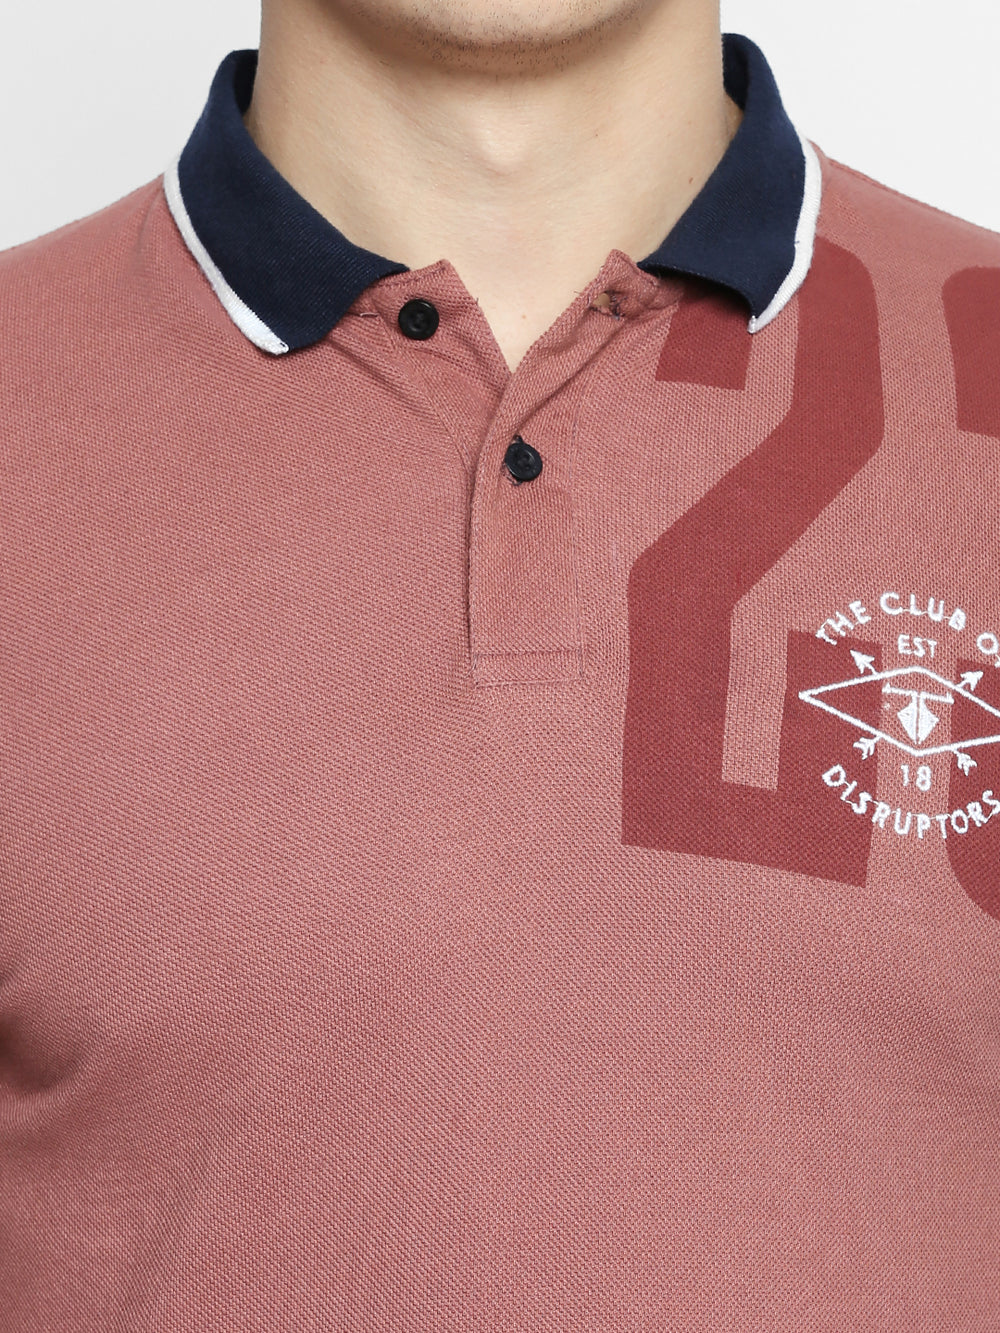 Salmon Pink Graphic Print Cotton Half Sleeve Polo T-Shirt